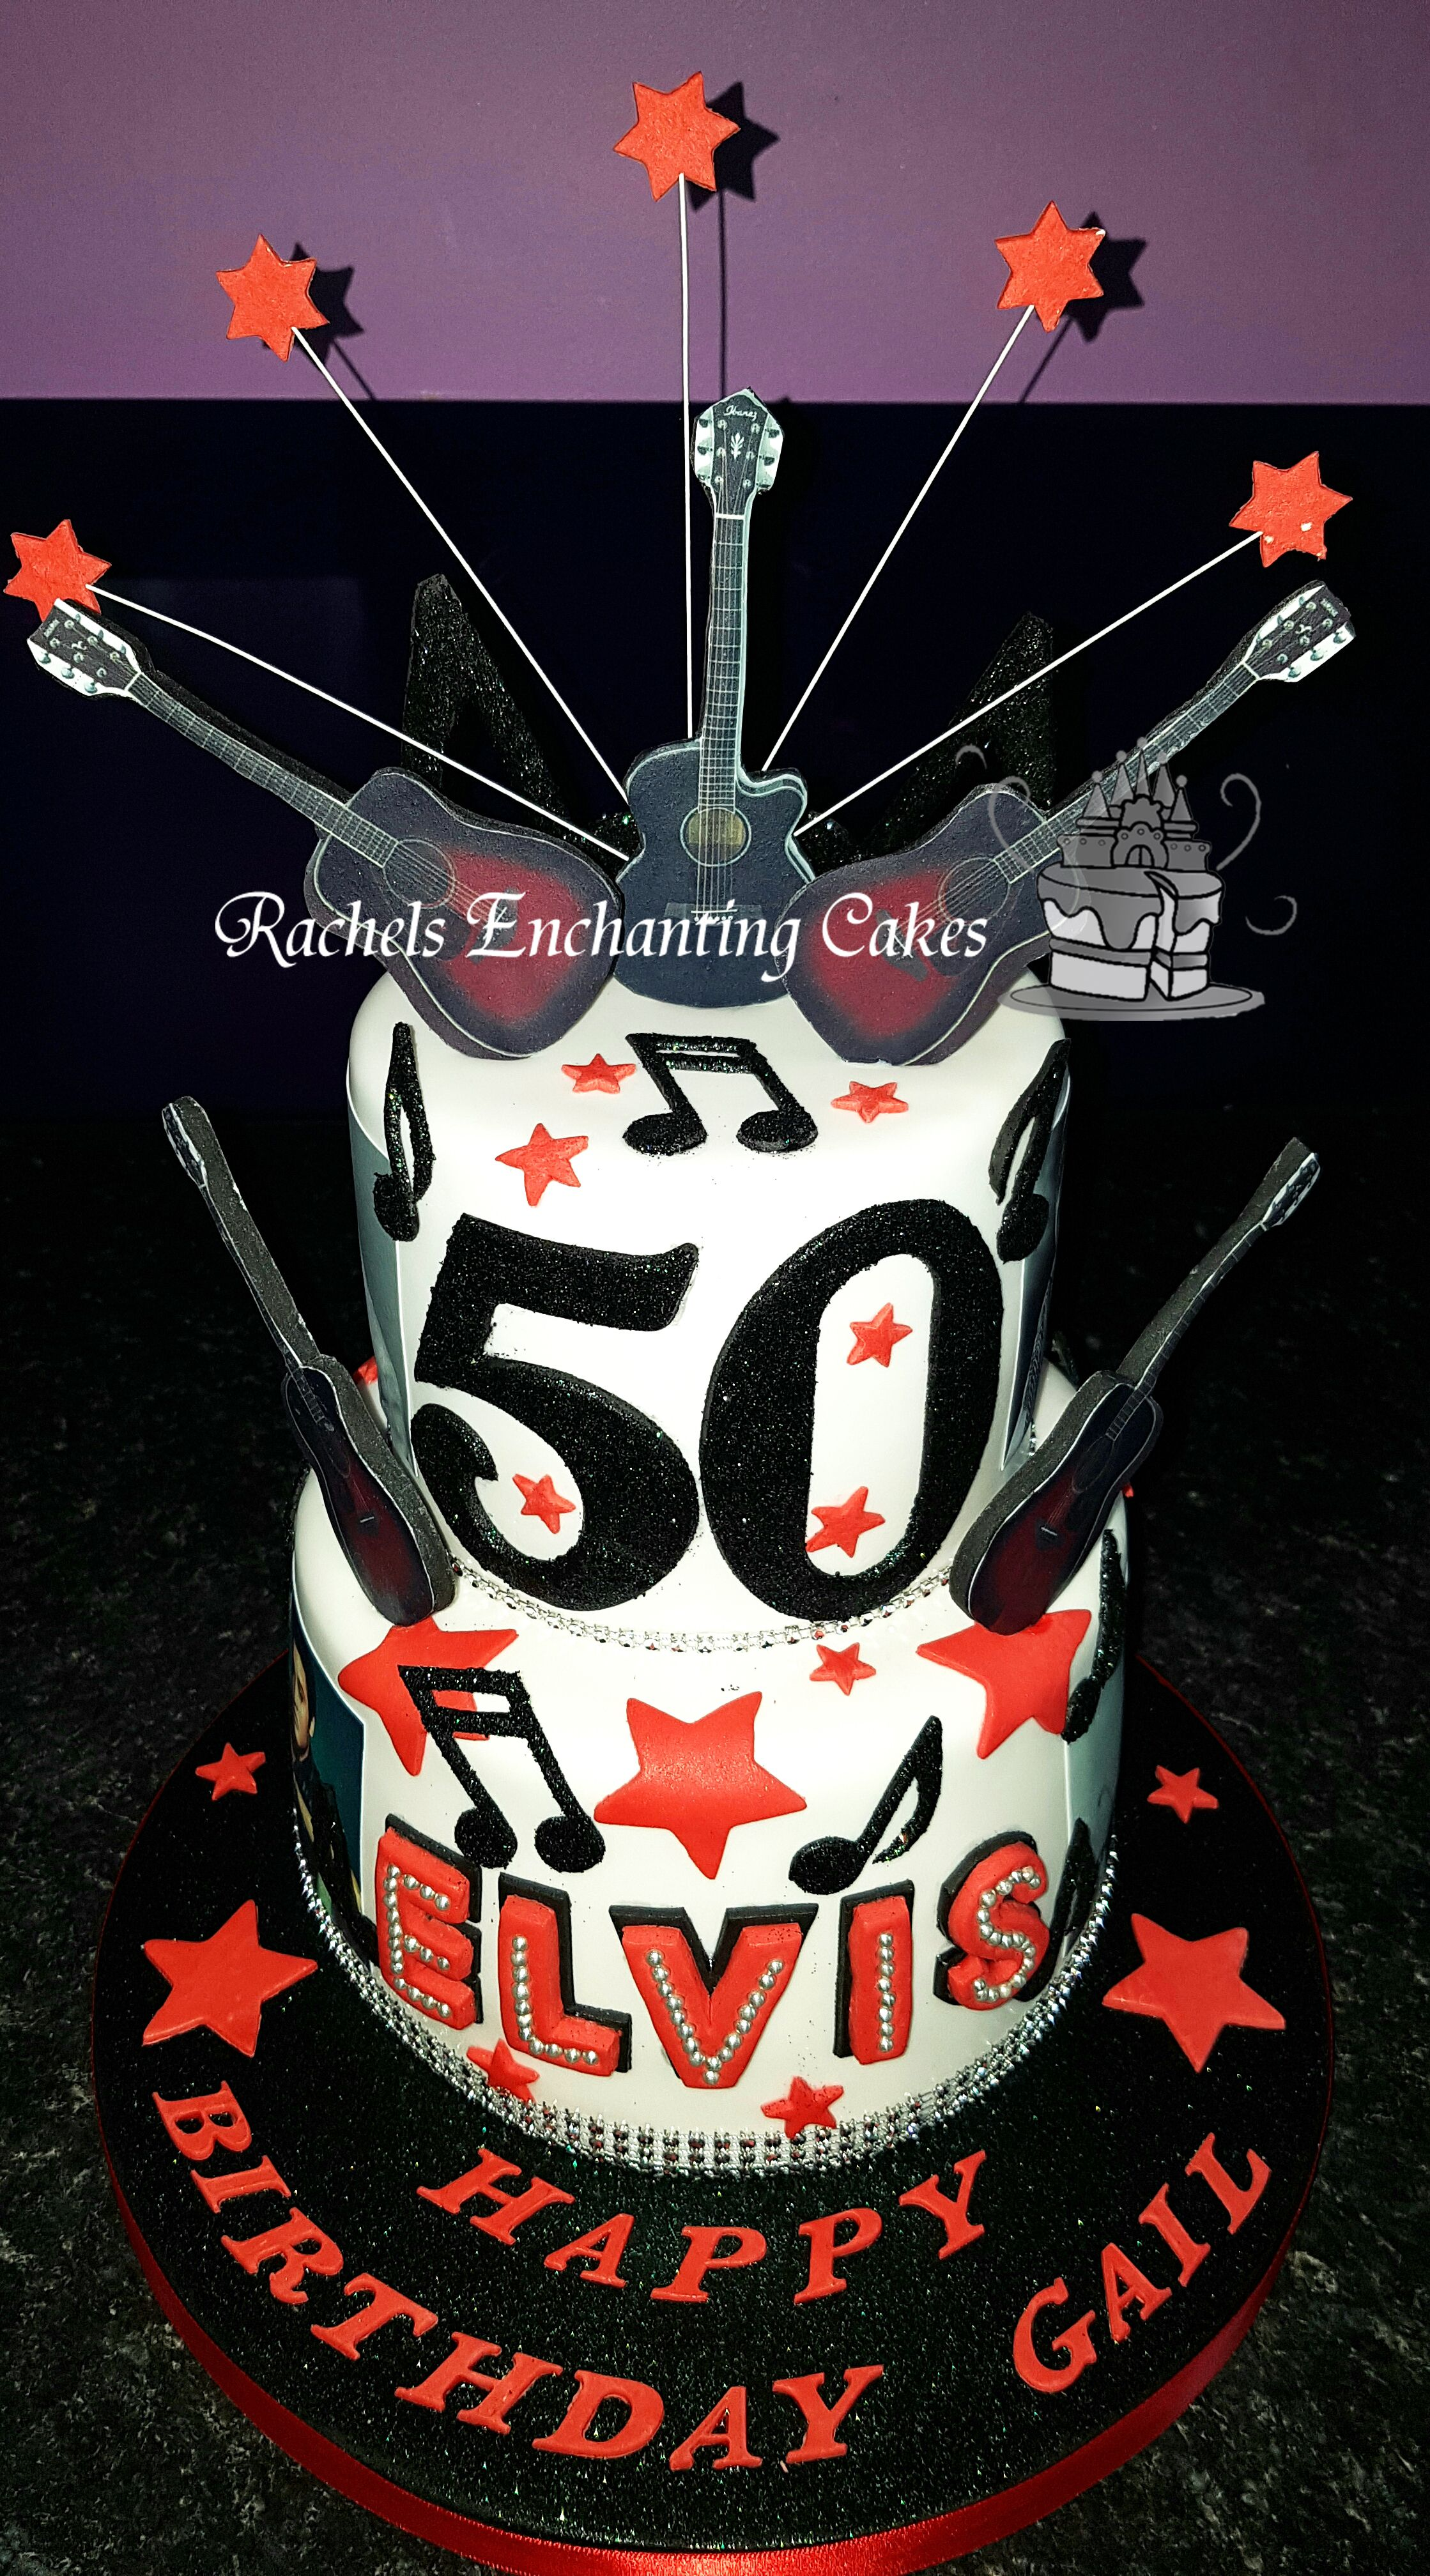 Two Tiered Elvis Presley Themed Birthday Cake By Rachels Enchanting